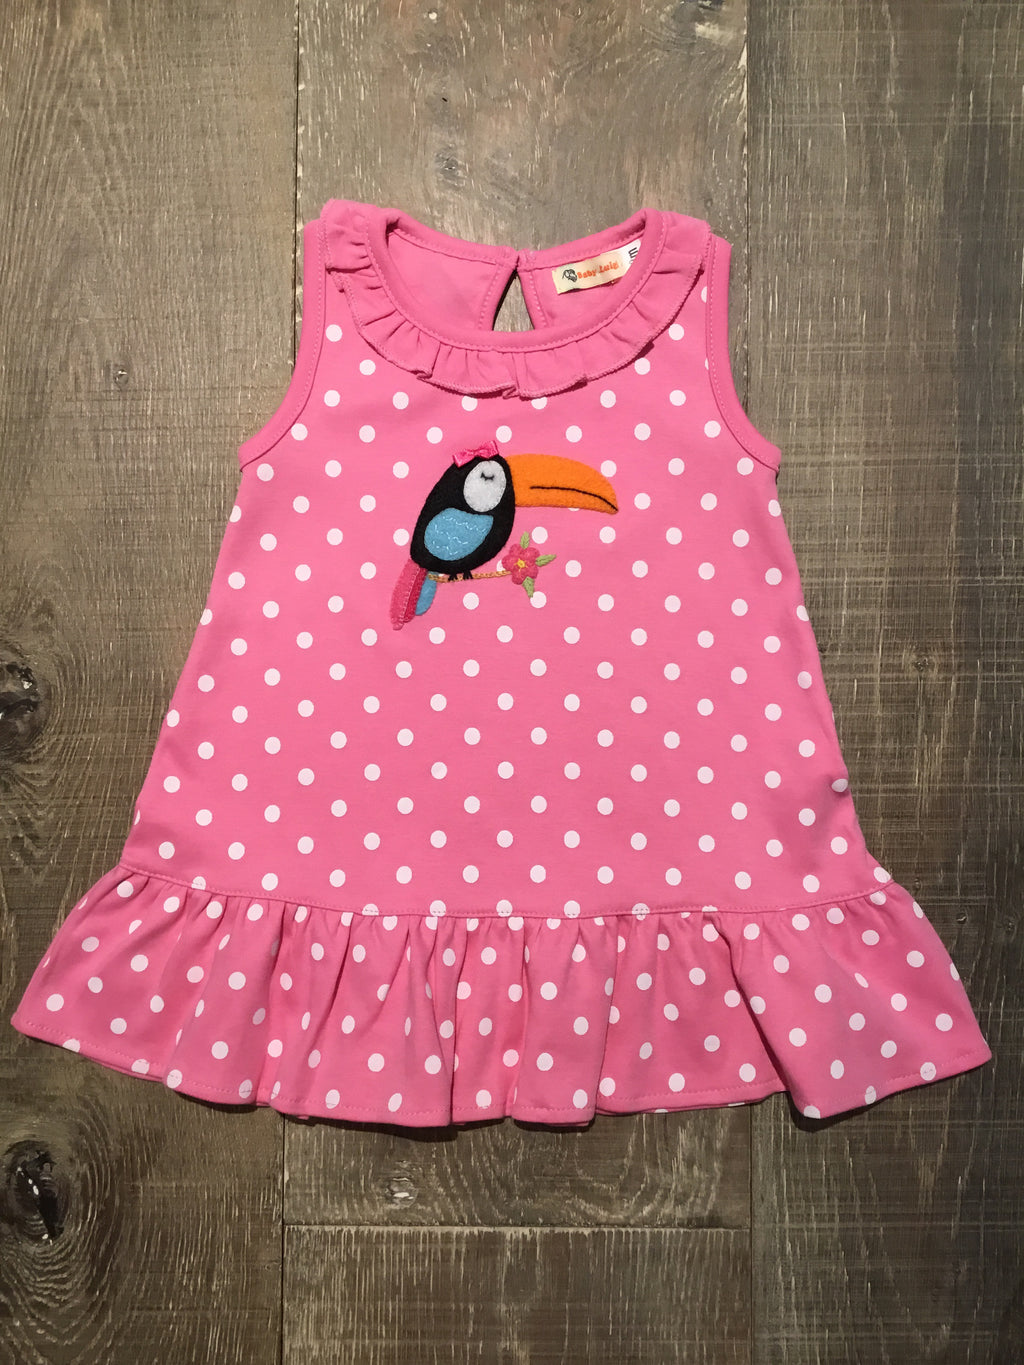 Toucan Ruffle Dress by Luigi Kids